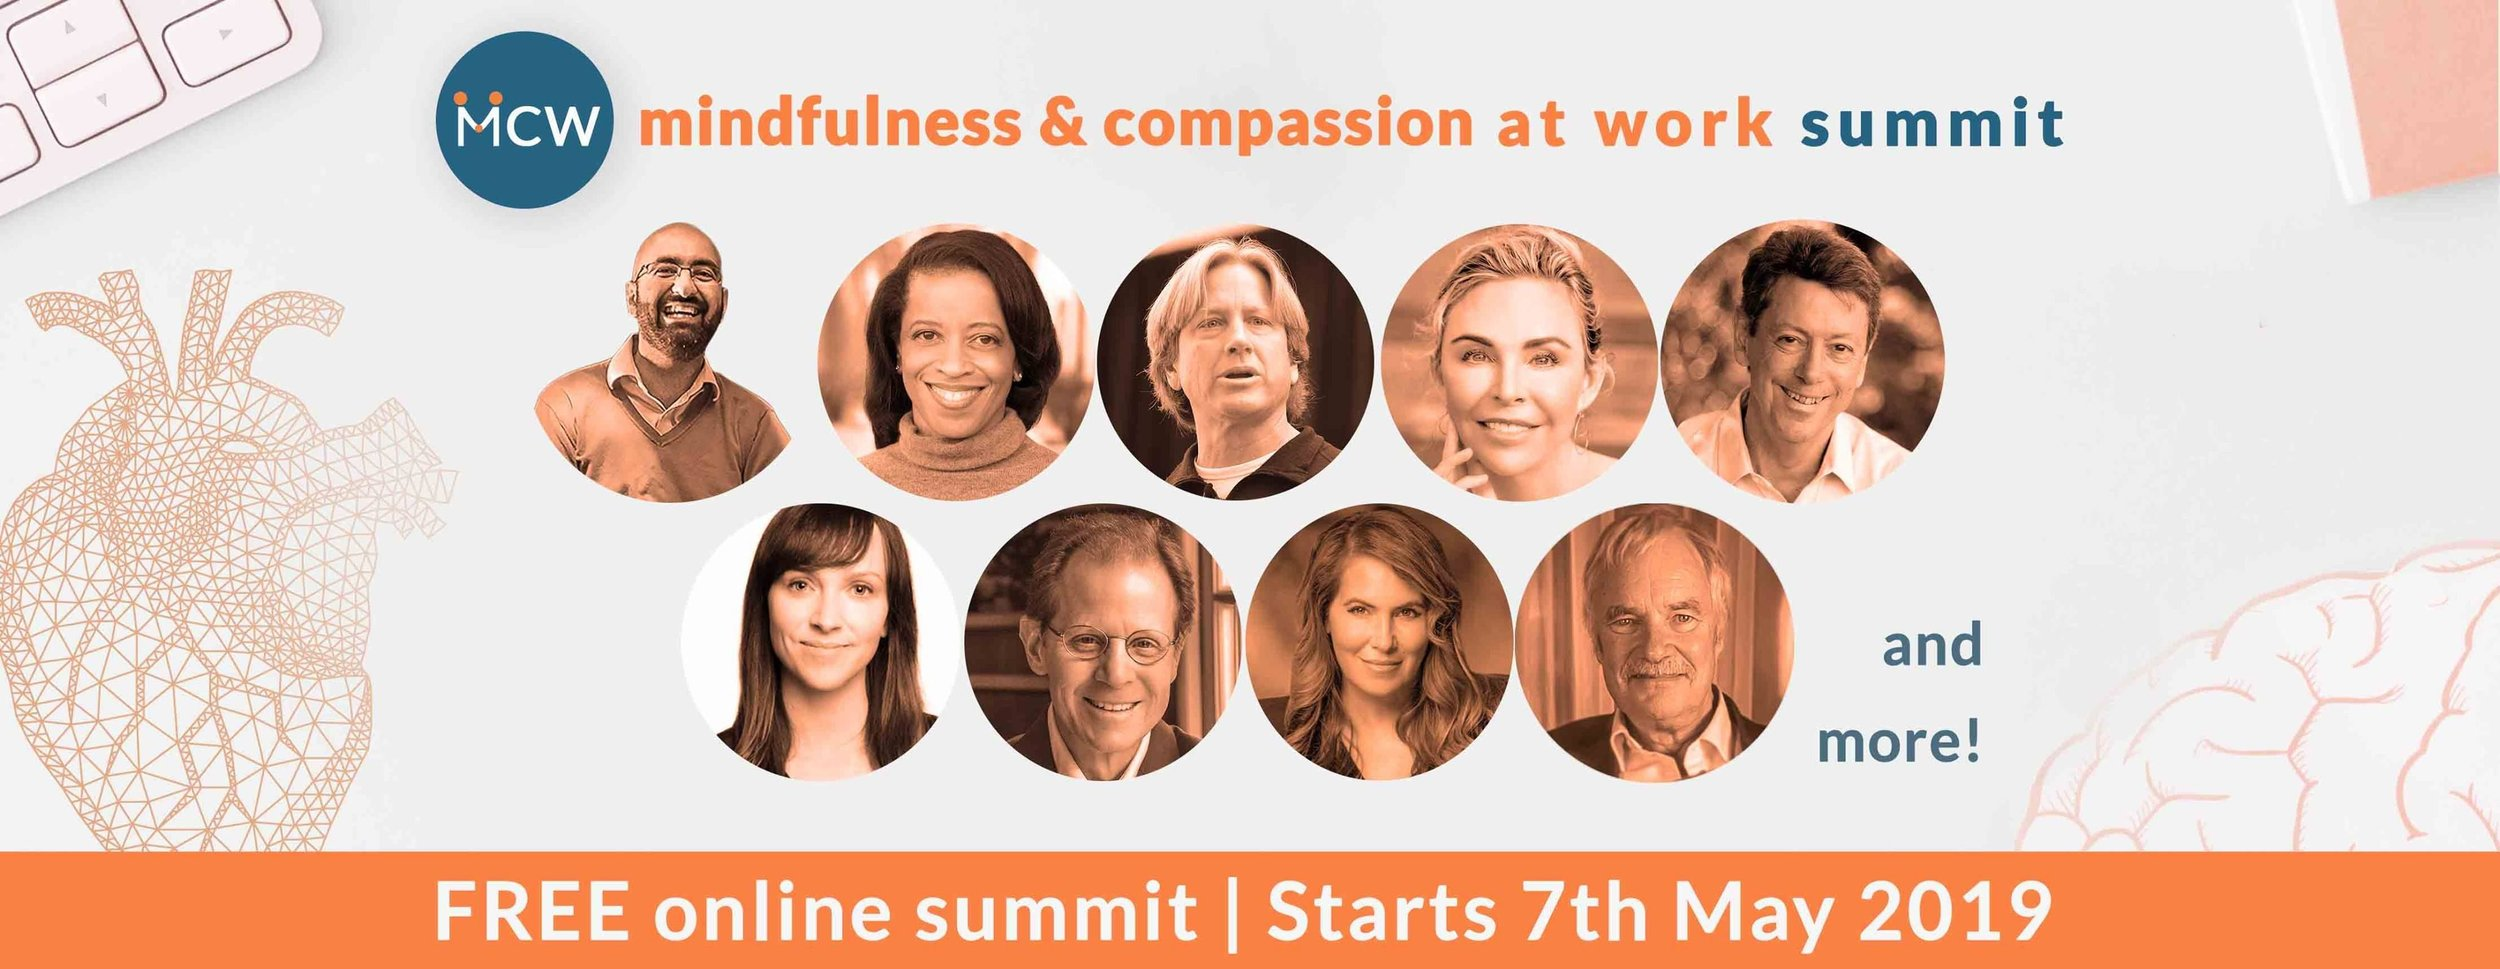 mindfulness compassion work summit.JPEG